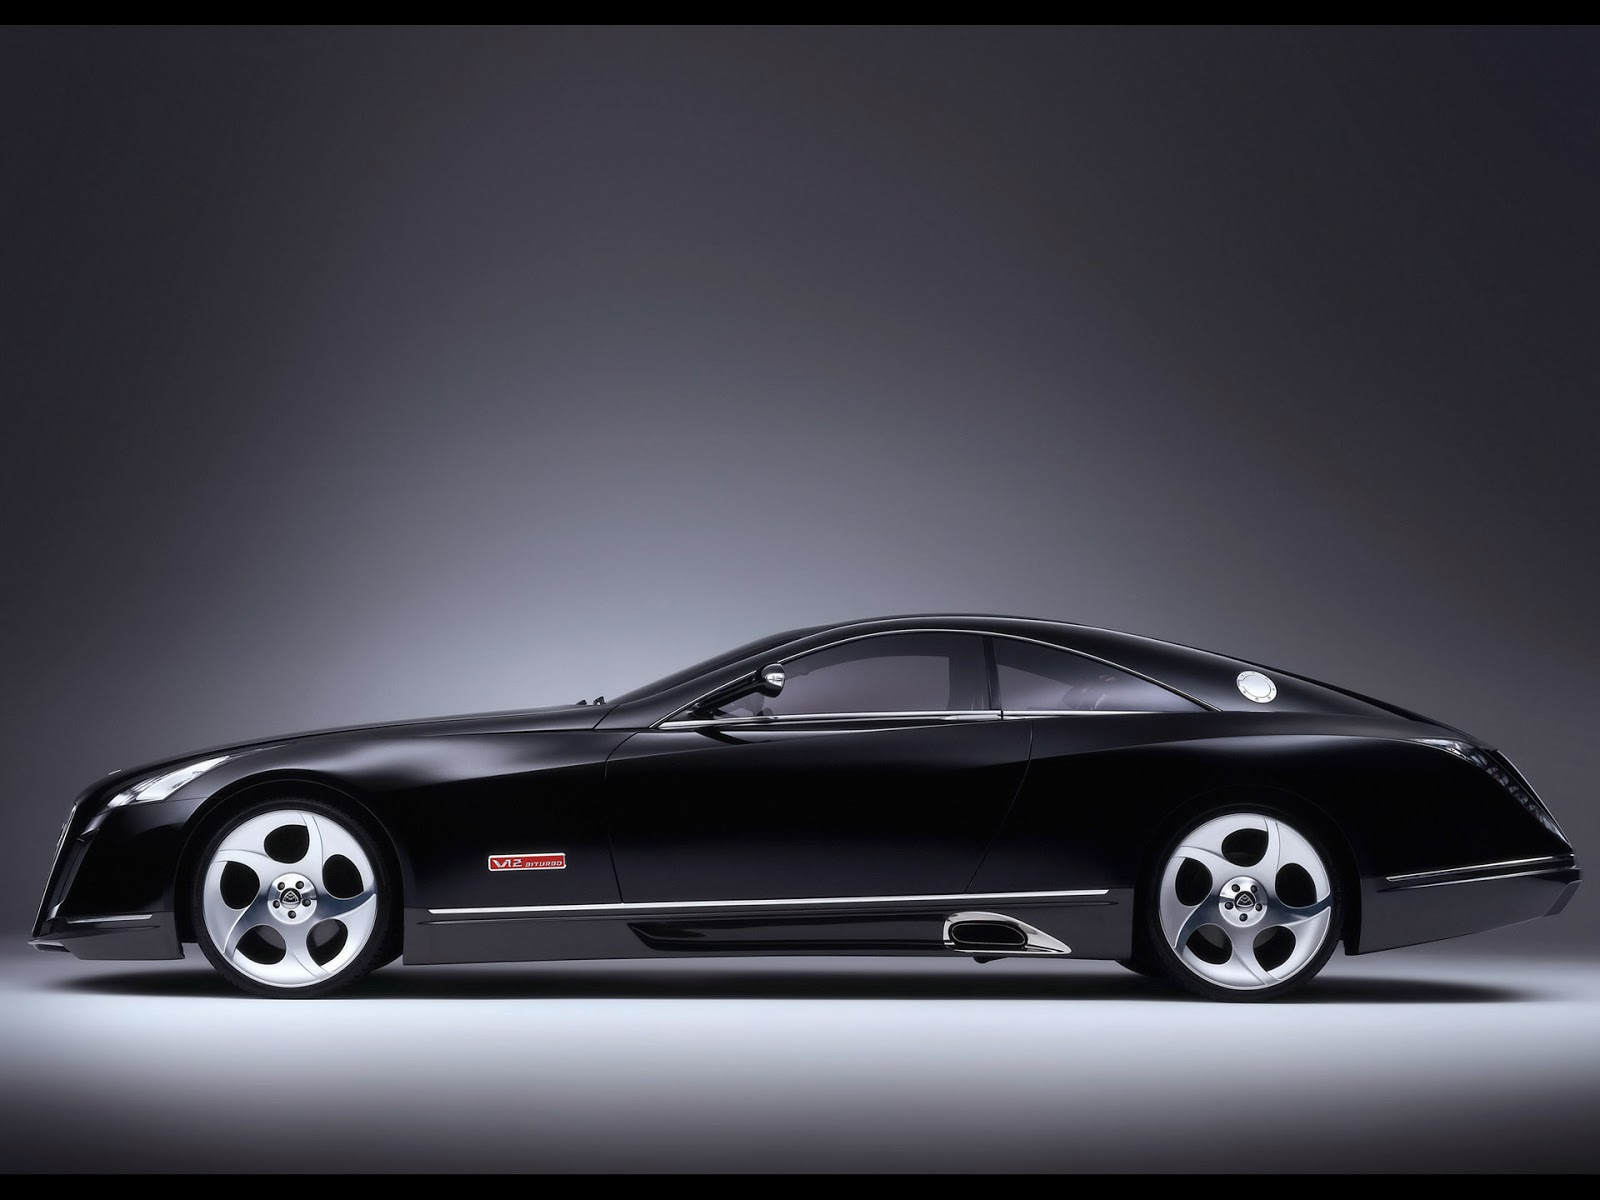 acura xts html with Maybach Cars 2013 on Auto Pinstripes as well Cagiva Raptor 125 furthermore Ford Shelby Gt350 Resimleri besides Mazda Cx 9 2013 Wallpaper in addition 2015 Porsche Macan Hidden Battery Jump Start.